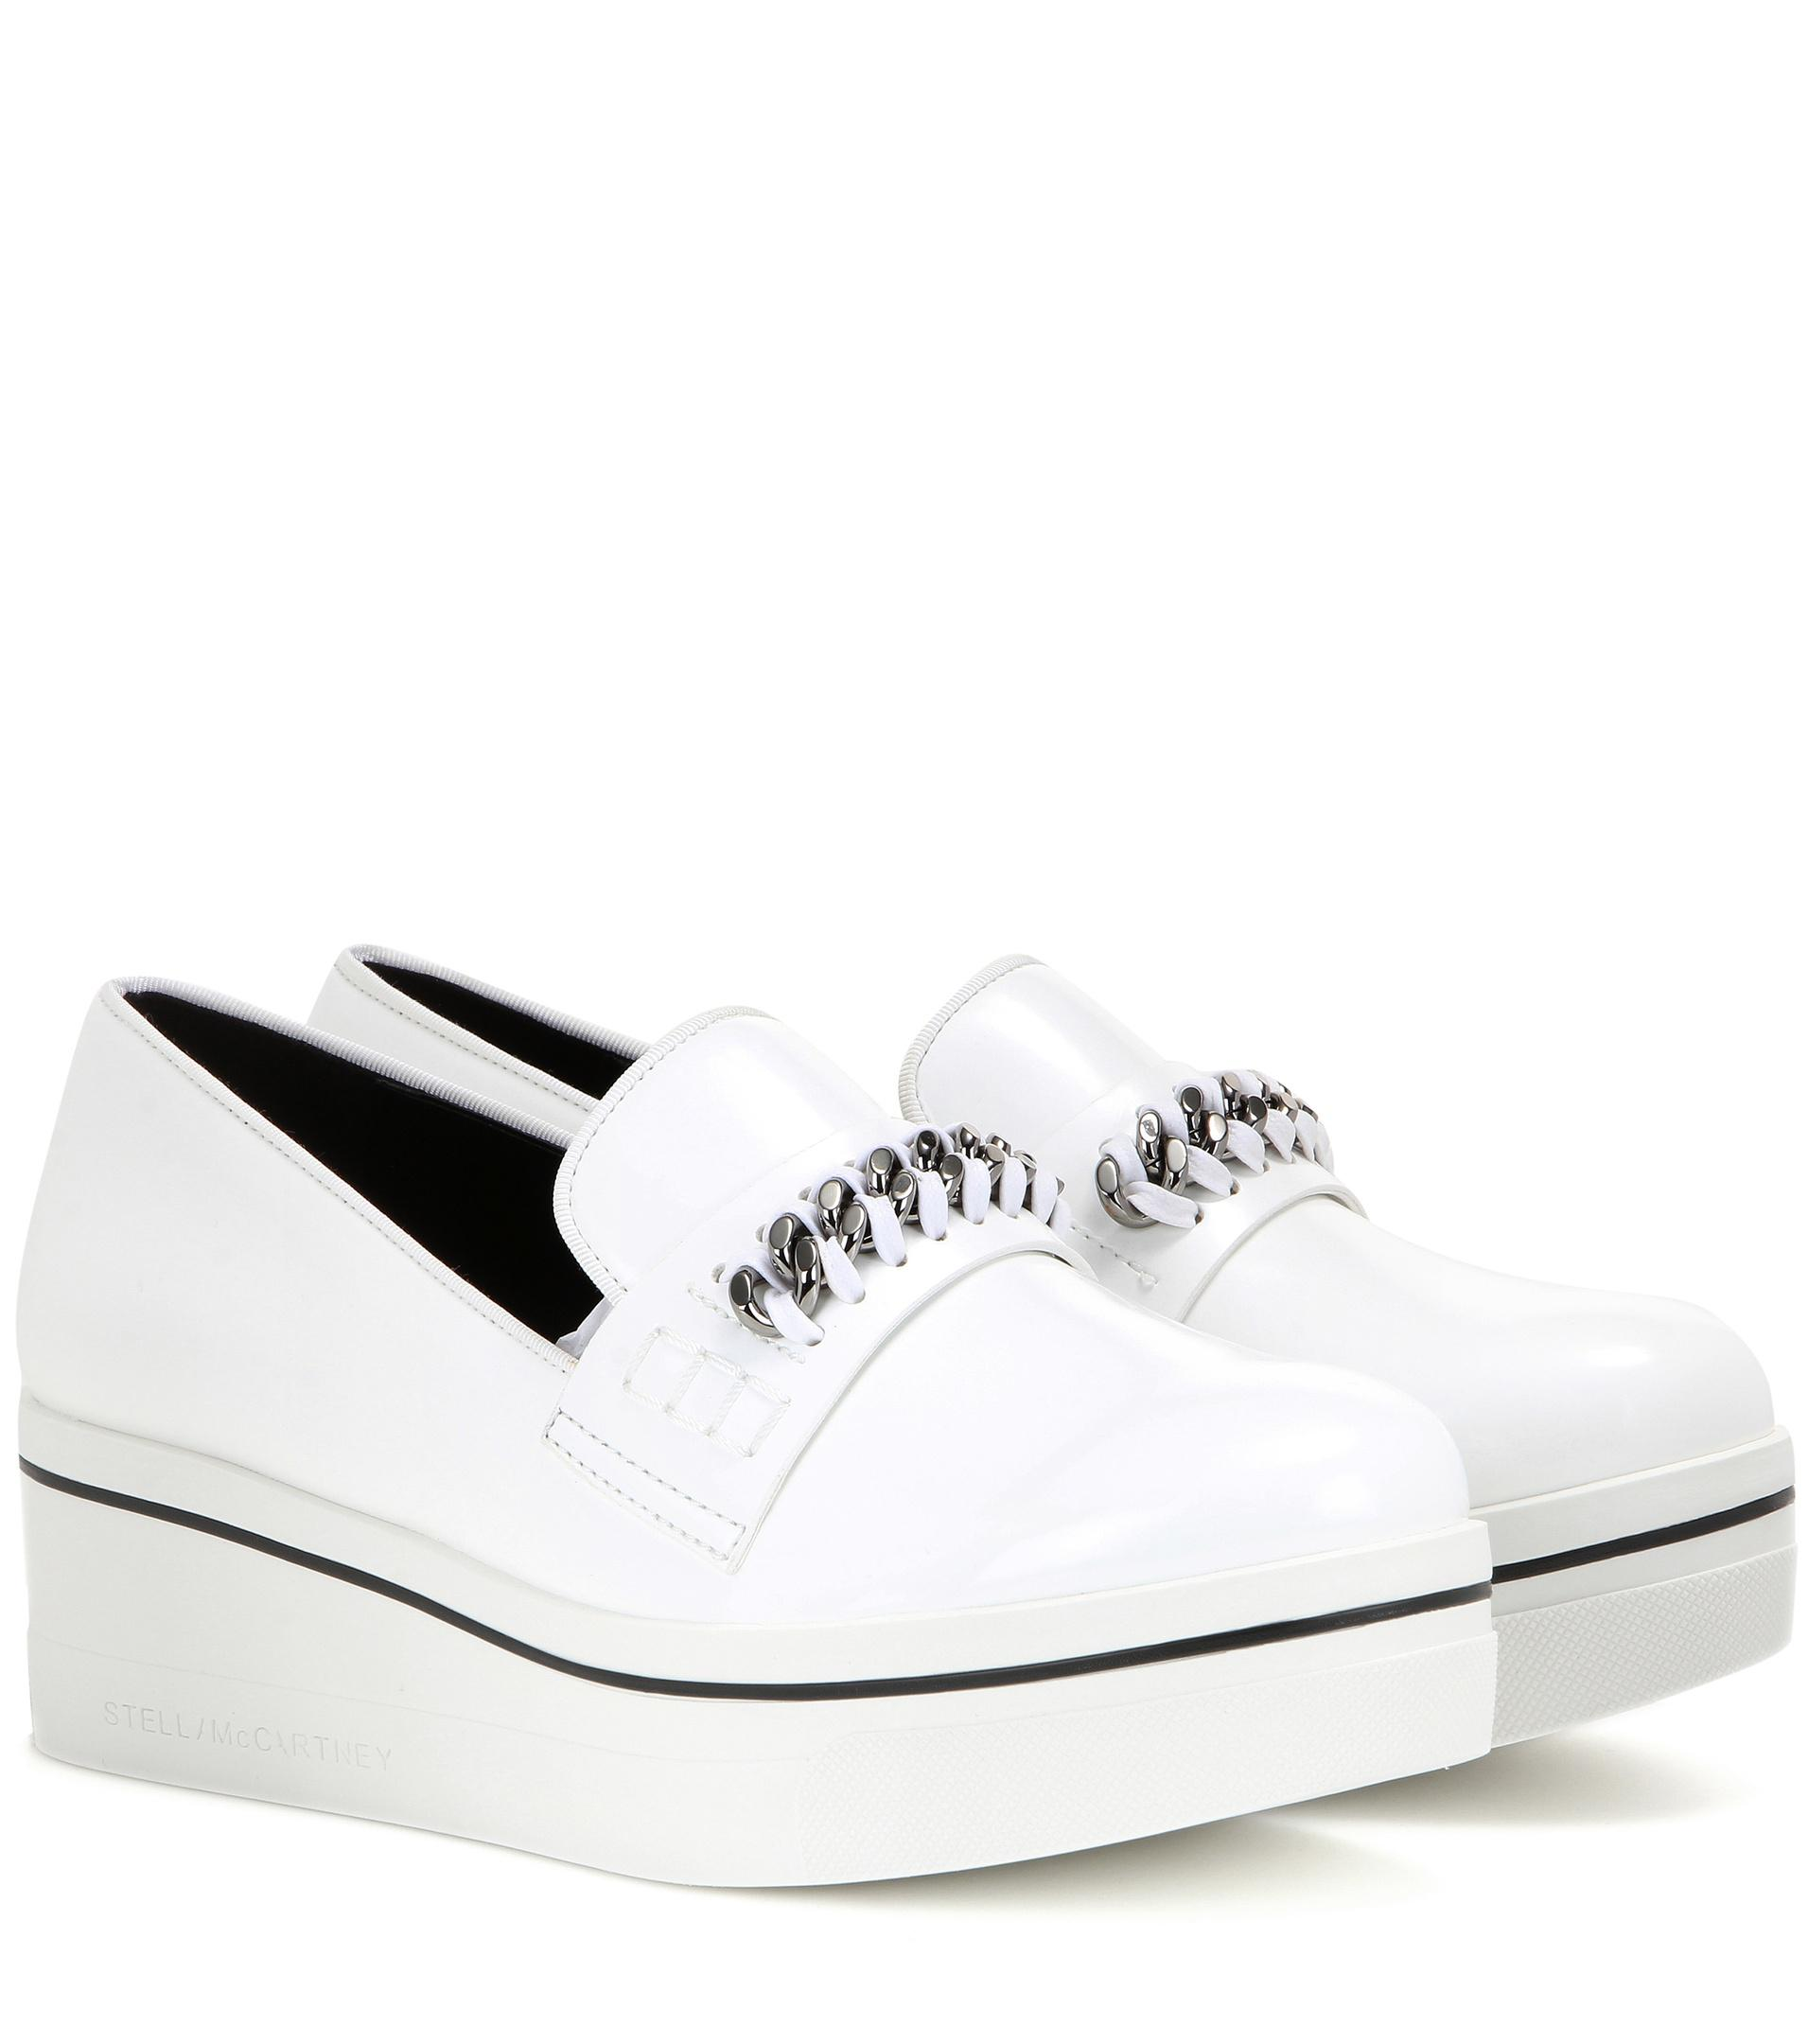 Stella McCartney Embellished faux leather platform slip-on sneakers discount pay with paypal H4qQS8UwNP